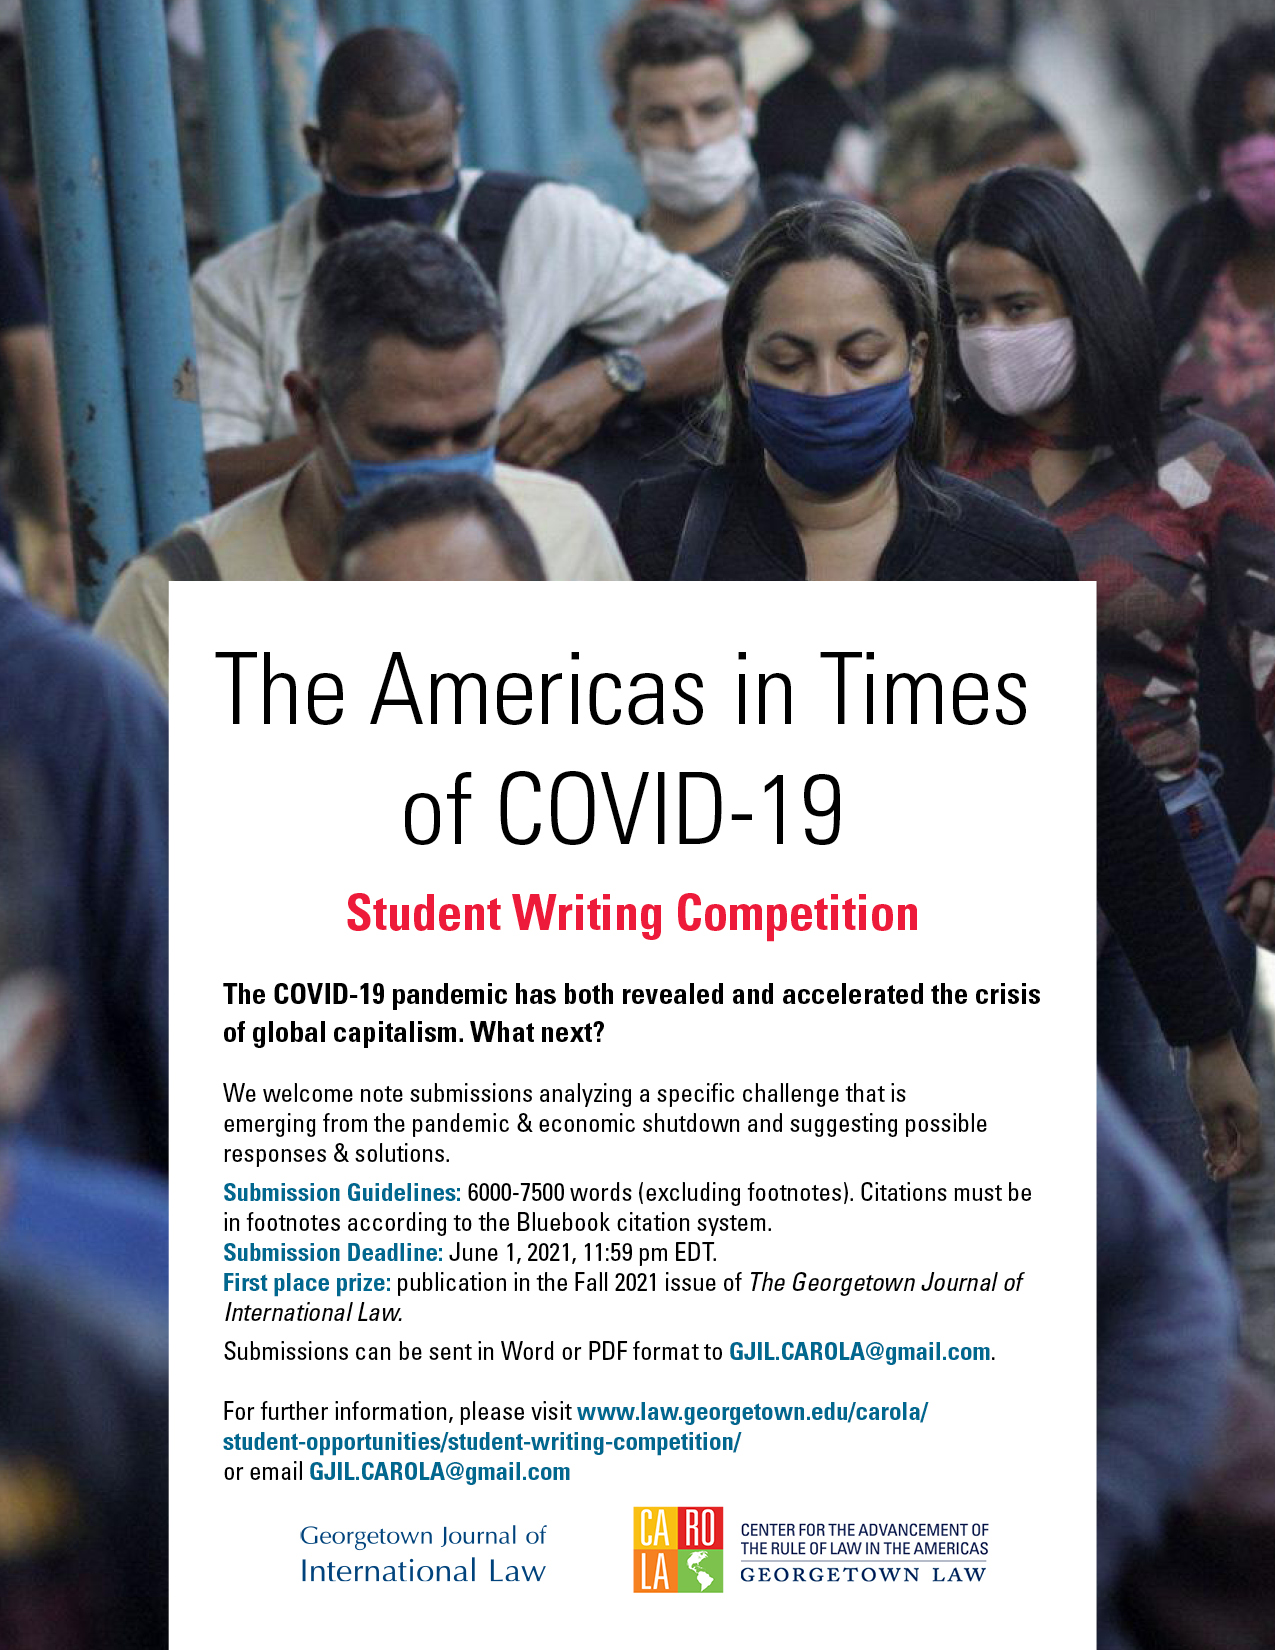 The Americas in Times of COVID-19 Student Writing Competition. The COVID-19 pandemic has both revealed and accelerated the crisis of global capitalism. What next? We welcome note submissions analyzing a specific challenge that is emerging from the pandemic & economic shutdown and suggesting possible responses & solutions. Submission Guidelines: 6000-7500 words (excluding footnotes). Citations must be in footnotes according to the Bluebook citation system. Submission Deadline: June 1, 2021. First place prize: publication in the Fall 2021 issue of the GJIL For further information, please visit www.law.georgetown.edu/carola/student-opportunities/student-writing-competition/ or email GJIL.CAROLA@gmail.com